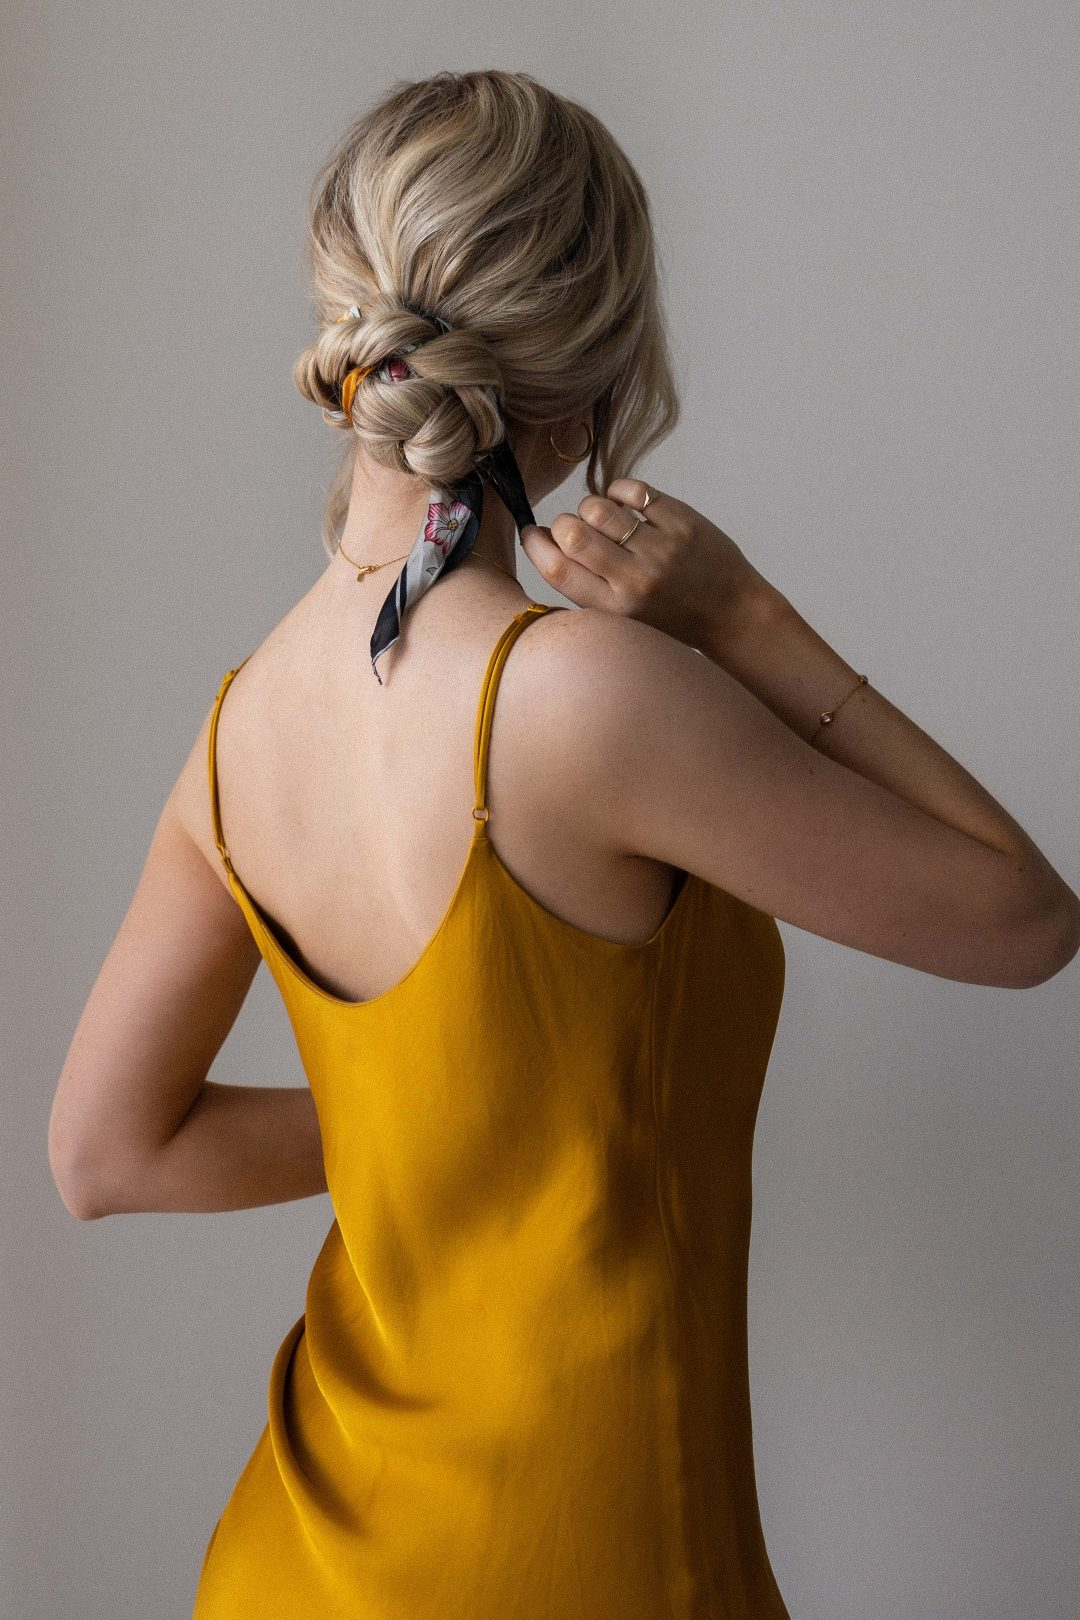 5 WAYS TO STYLE A SCARF IN YOUR HAIR + TUTORIALS